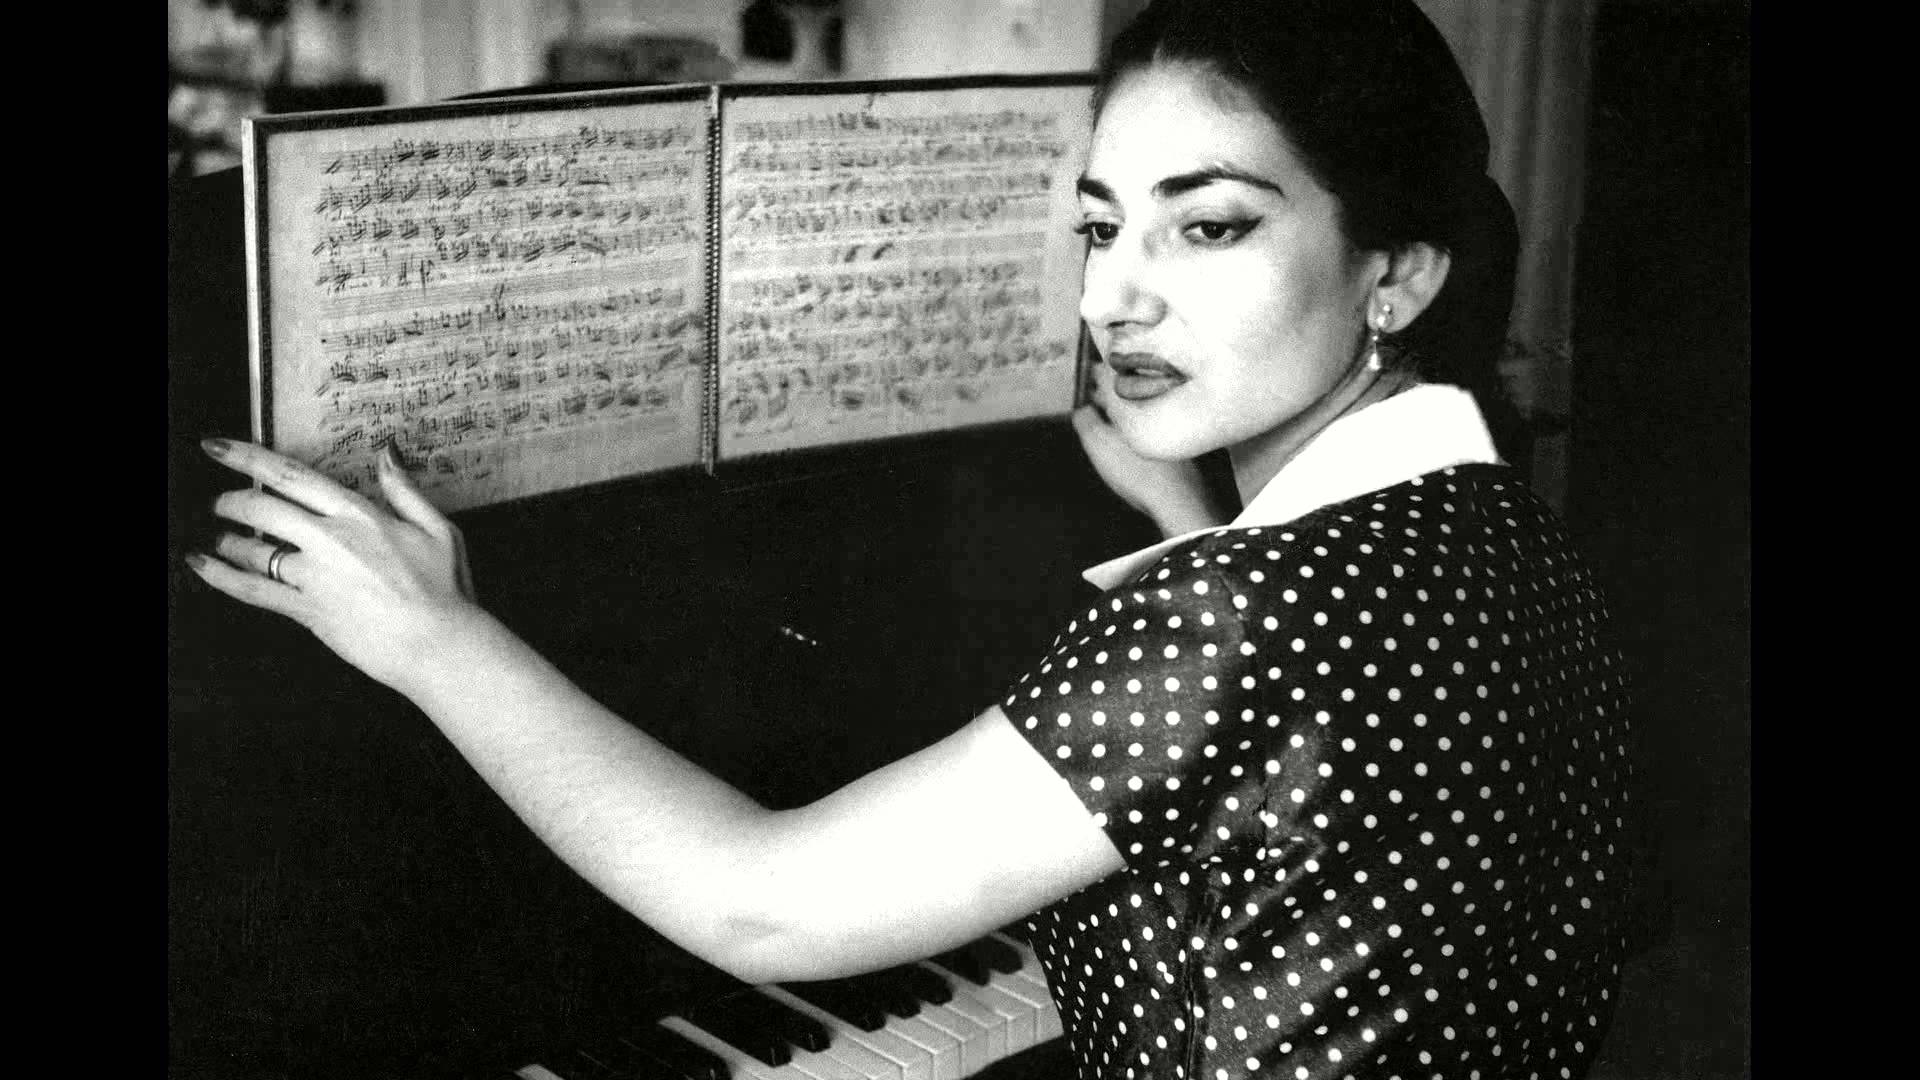 Maria Callas, a 40 anni dalla morte il mito e la voce dell'intramontabile Divina [VIDEO]